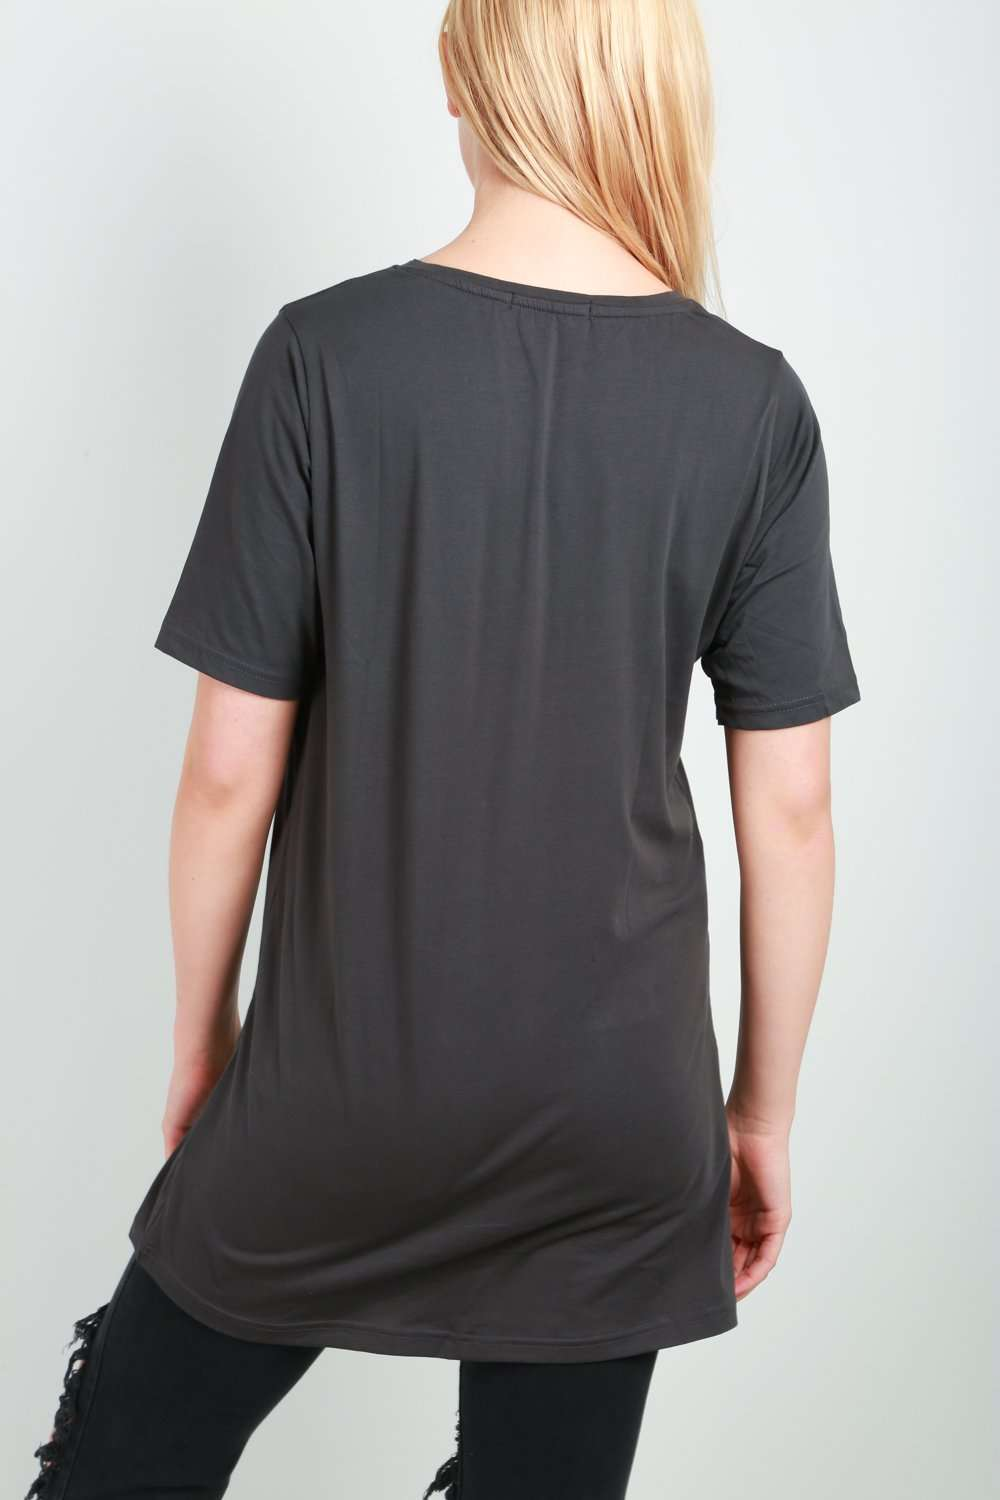 Georgia Charcoal Oversized Basic Tshirt Dress - bejealous-com